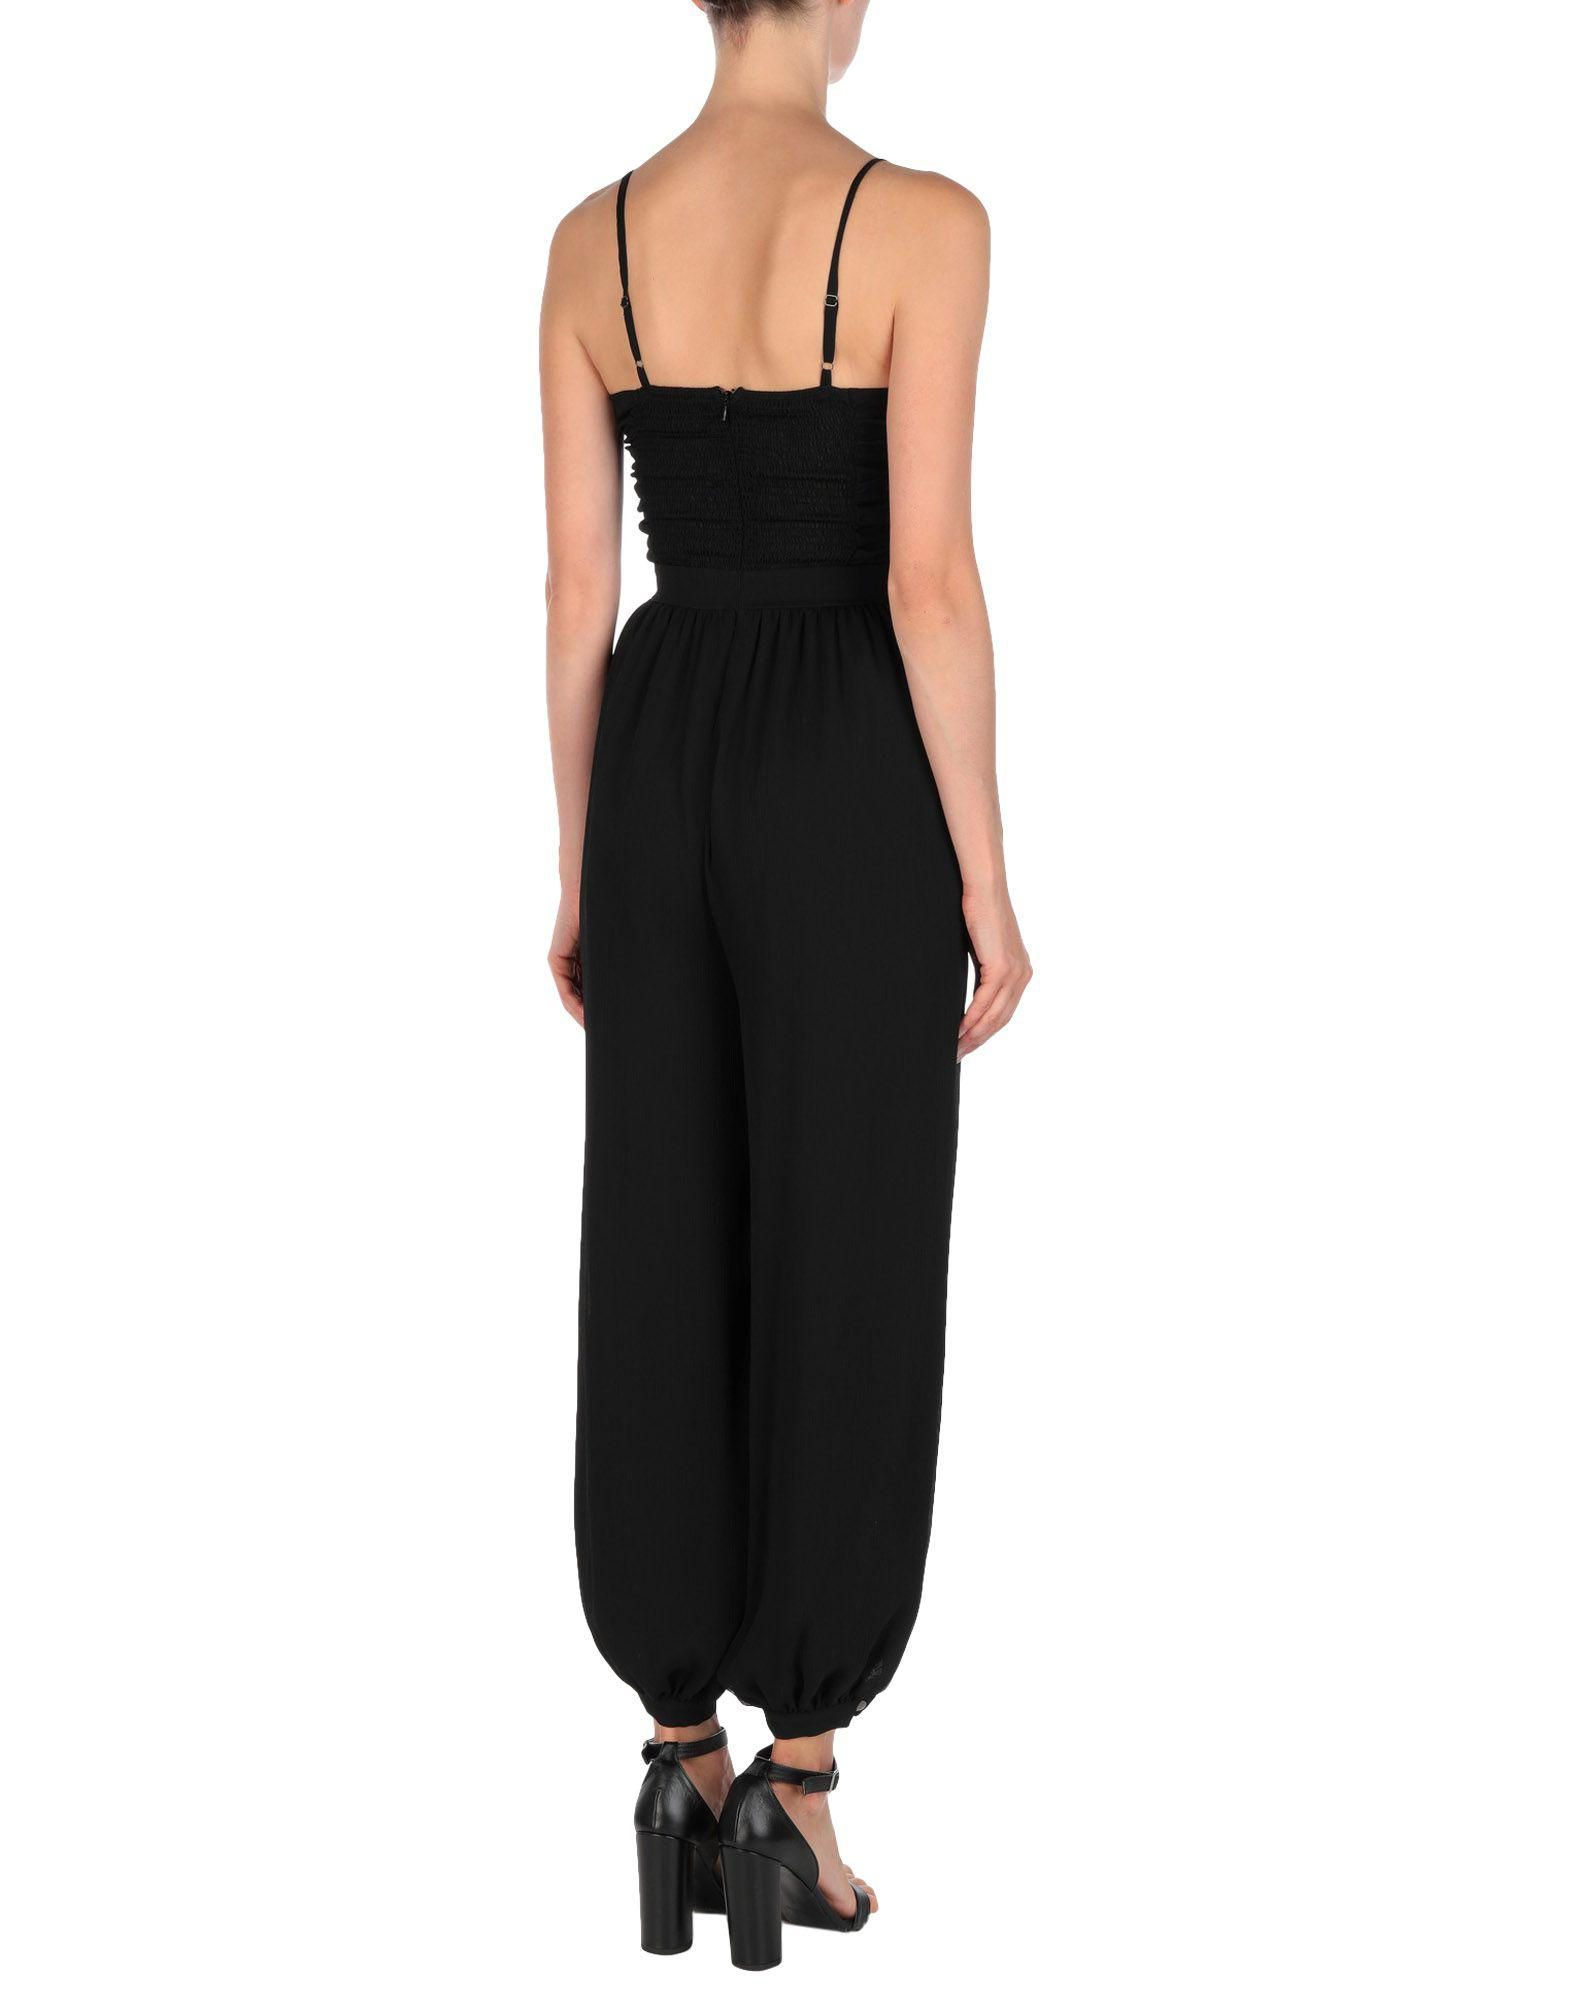 221186a5b826 Lyst - Endless Rose Jumpsuit in Black